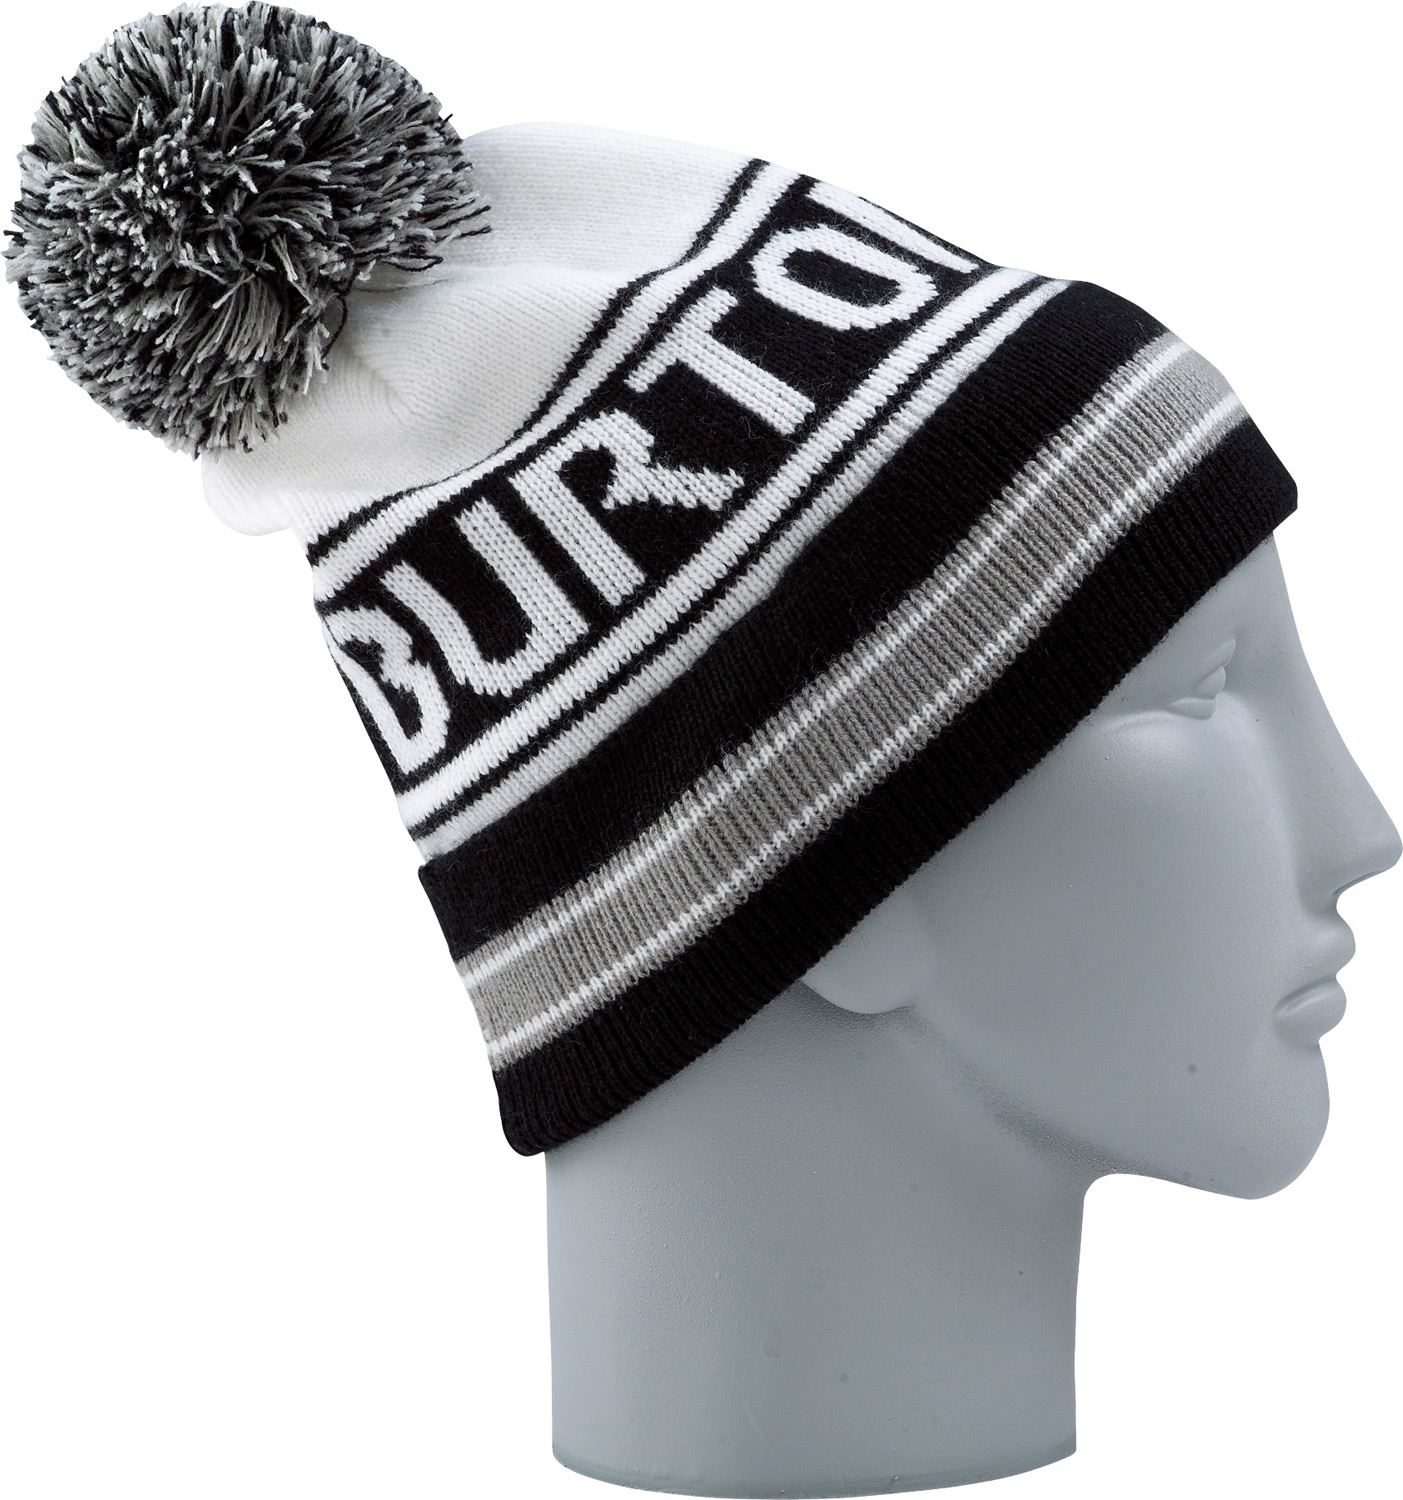 Snowboard Key Features of the Burton Trope Beanie: Fold-Up Skully Fit One Size Fits All 100% Acrylic/Vintage Stripe Beanie with Pom - $24.95